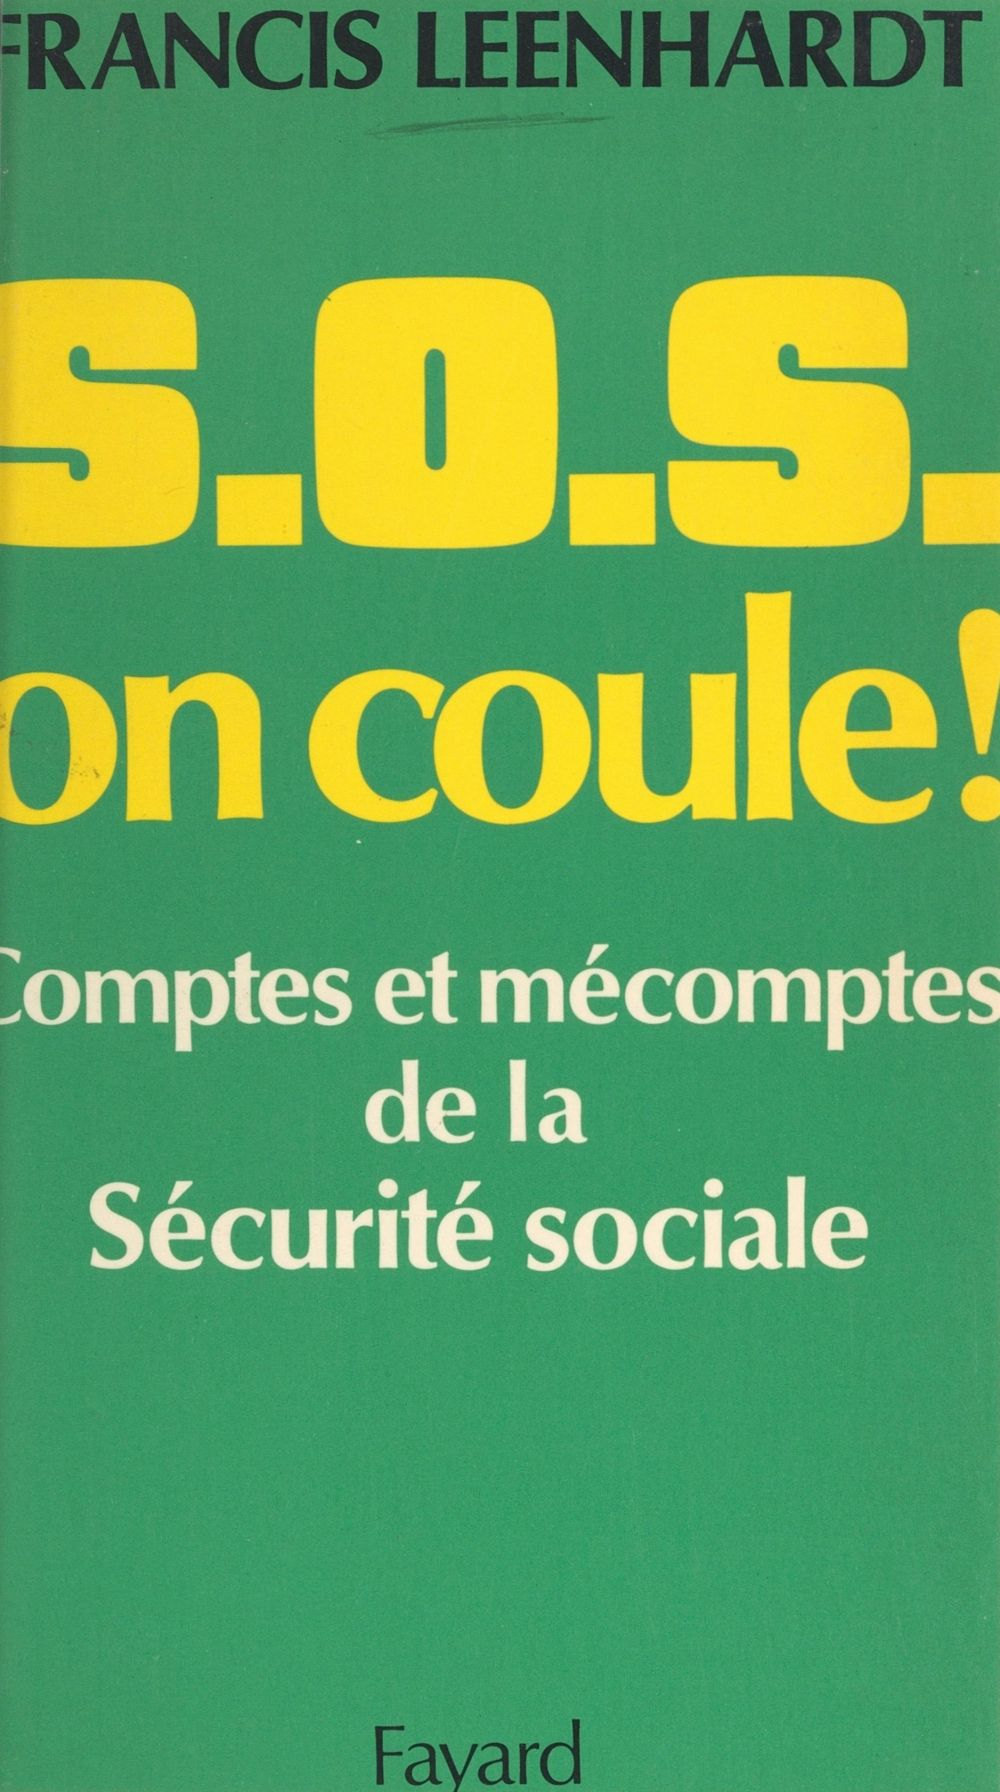 S.O.S. on coule !